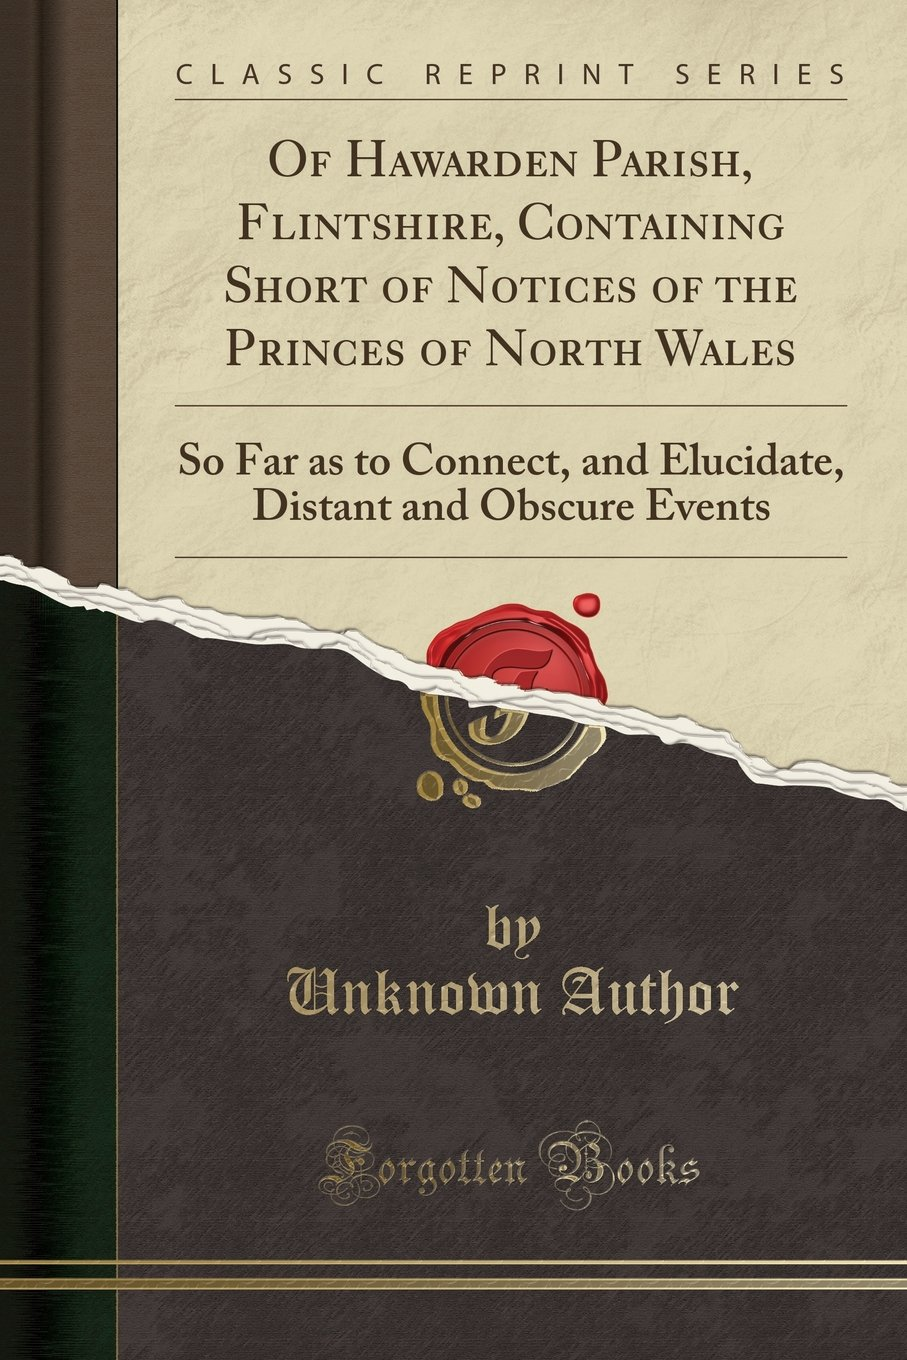 Download Of Hawarden Parish, Flintshire, Containing Short of Notices of the Princes of North Wales: So Far as to Connect, and Elucidate, Distant and Obscure Events (Classic Reprint) ebook